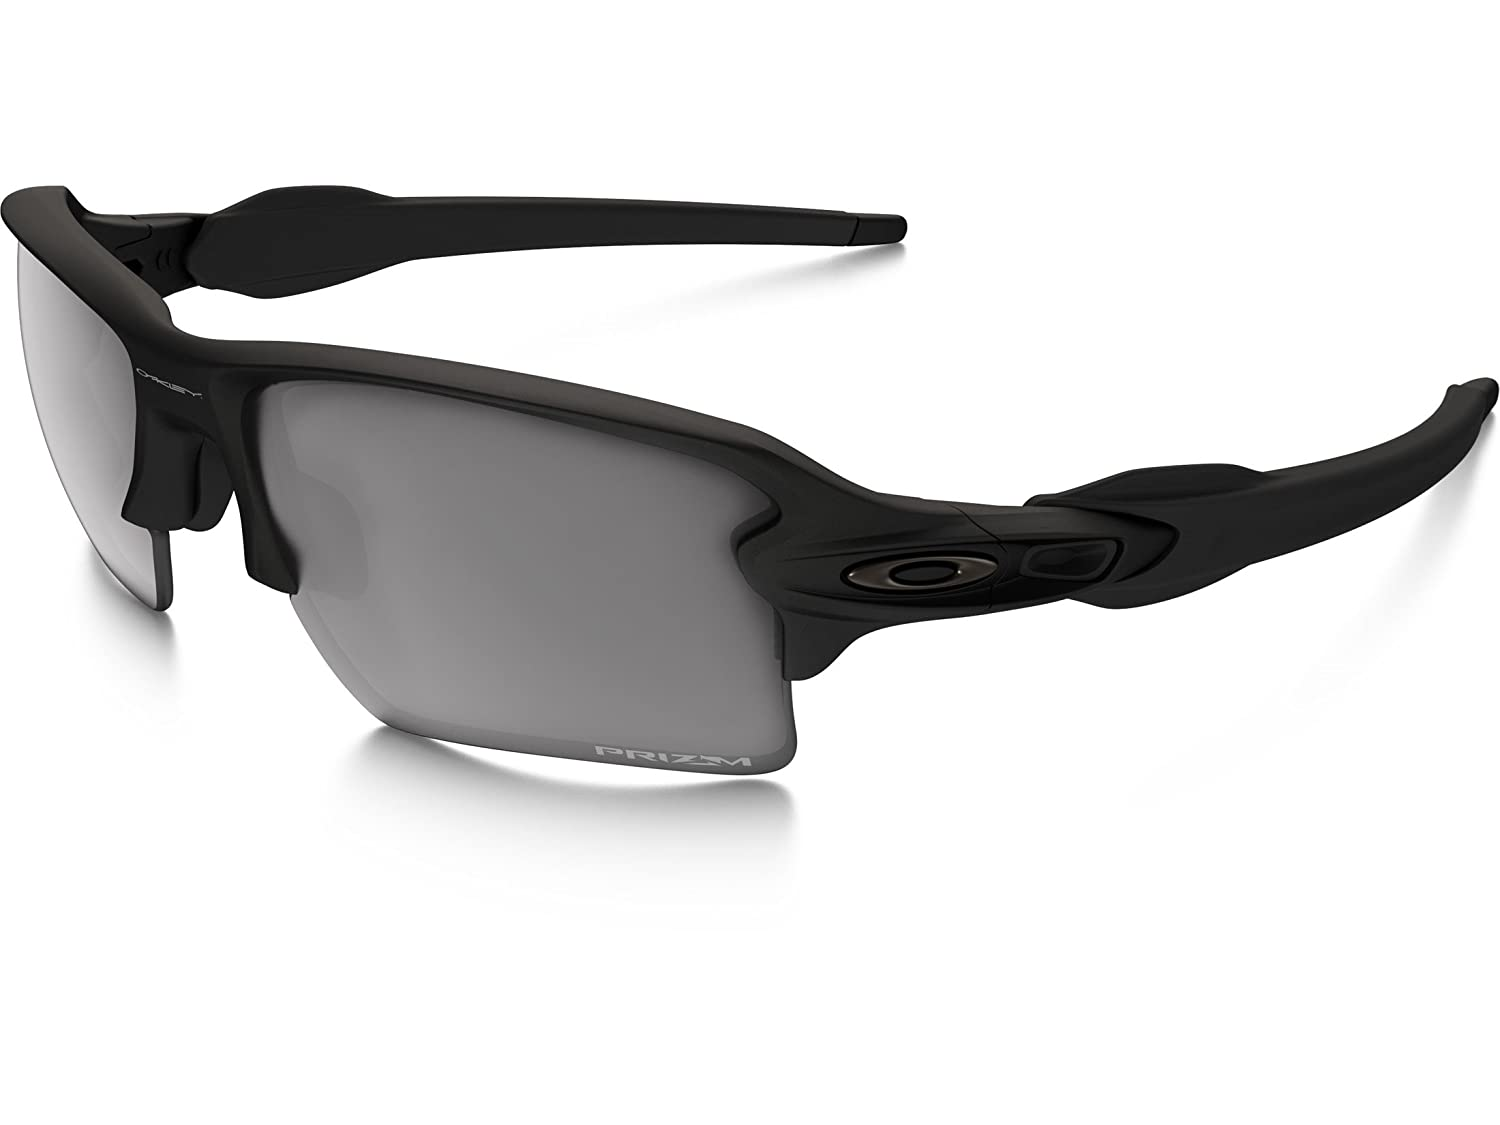 51ee80bd693 Amazon.com  Oakley SI Flak 2.0 XL Sunglasses Prizm Gray Lens Matte Black  Frame  Clothing